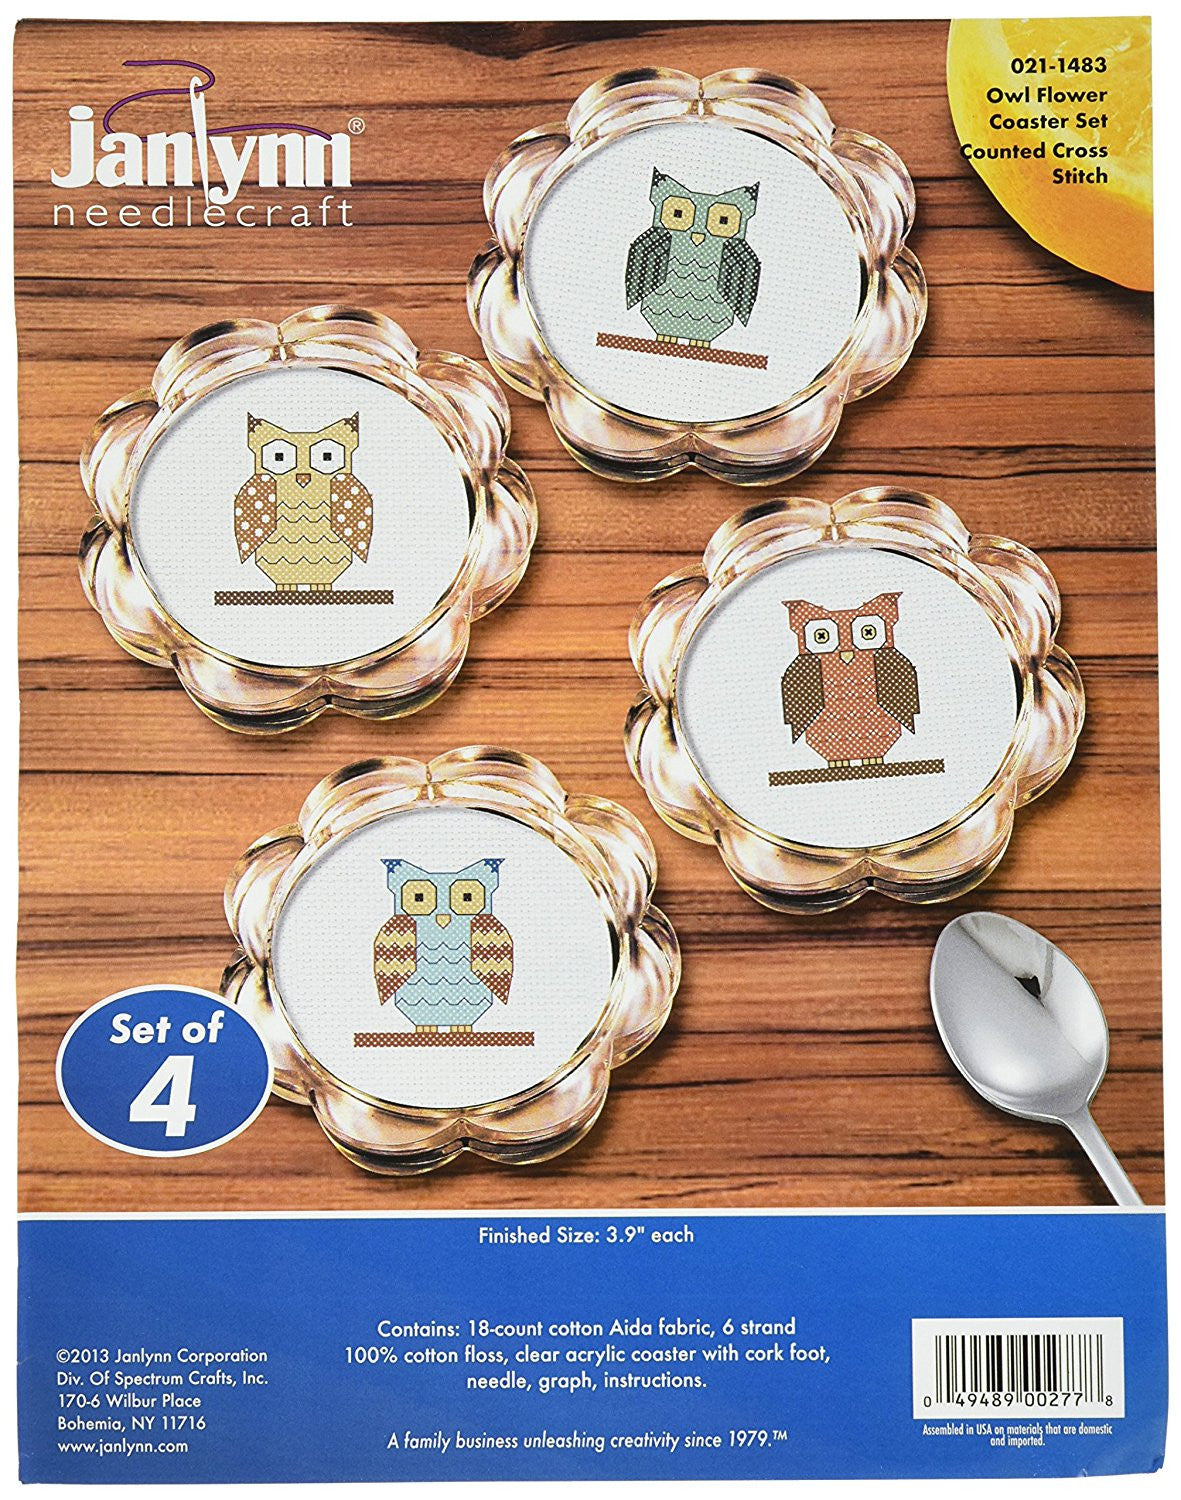 Janlynn Owl flower coaster set counted cross stitch kit  Apps   Save